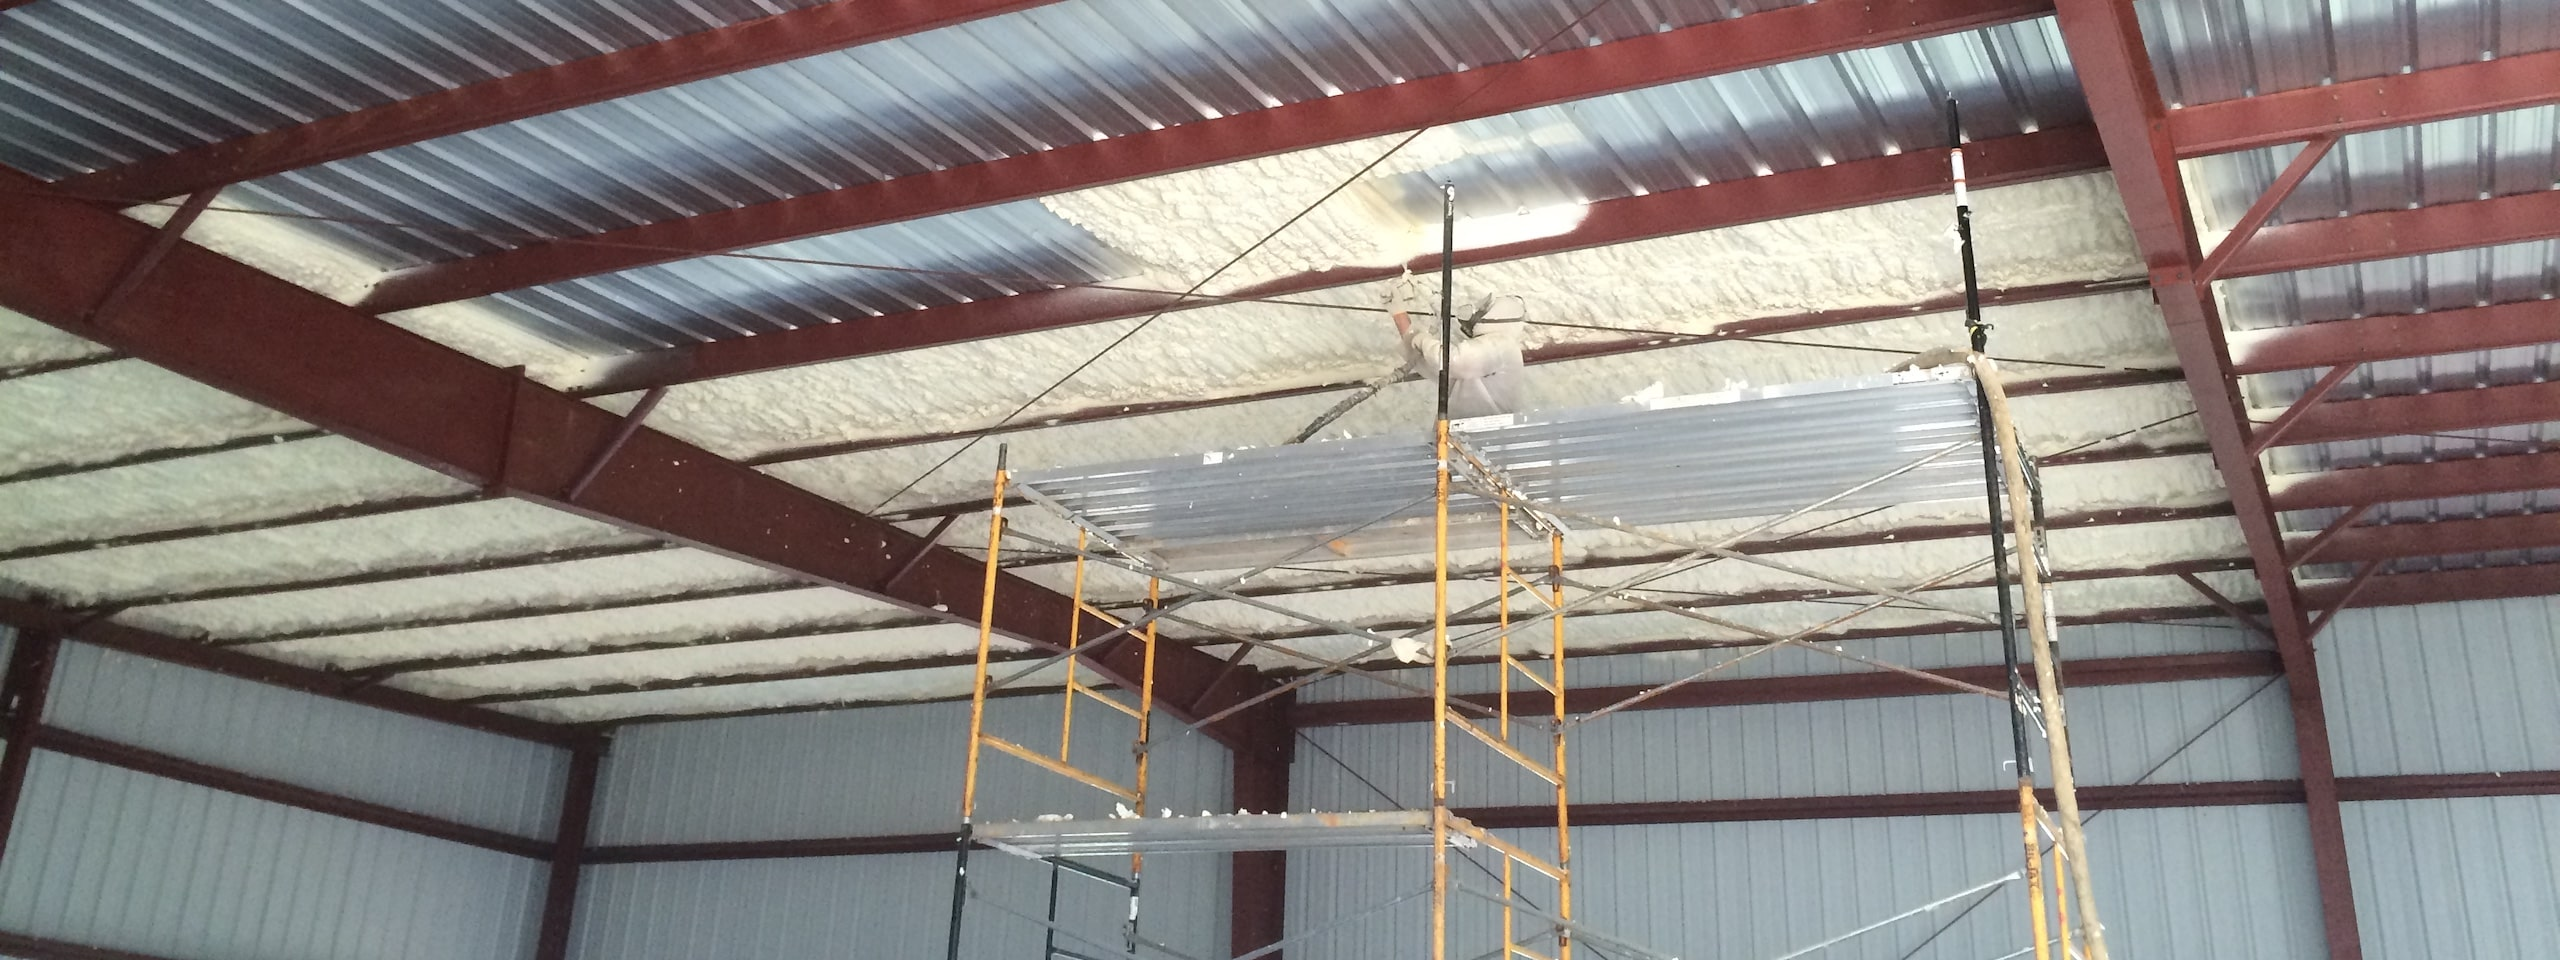 Commercial Spray Foam Insulation Near Me Central Kentucky